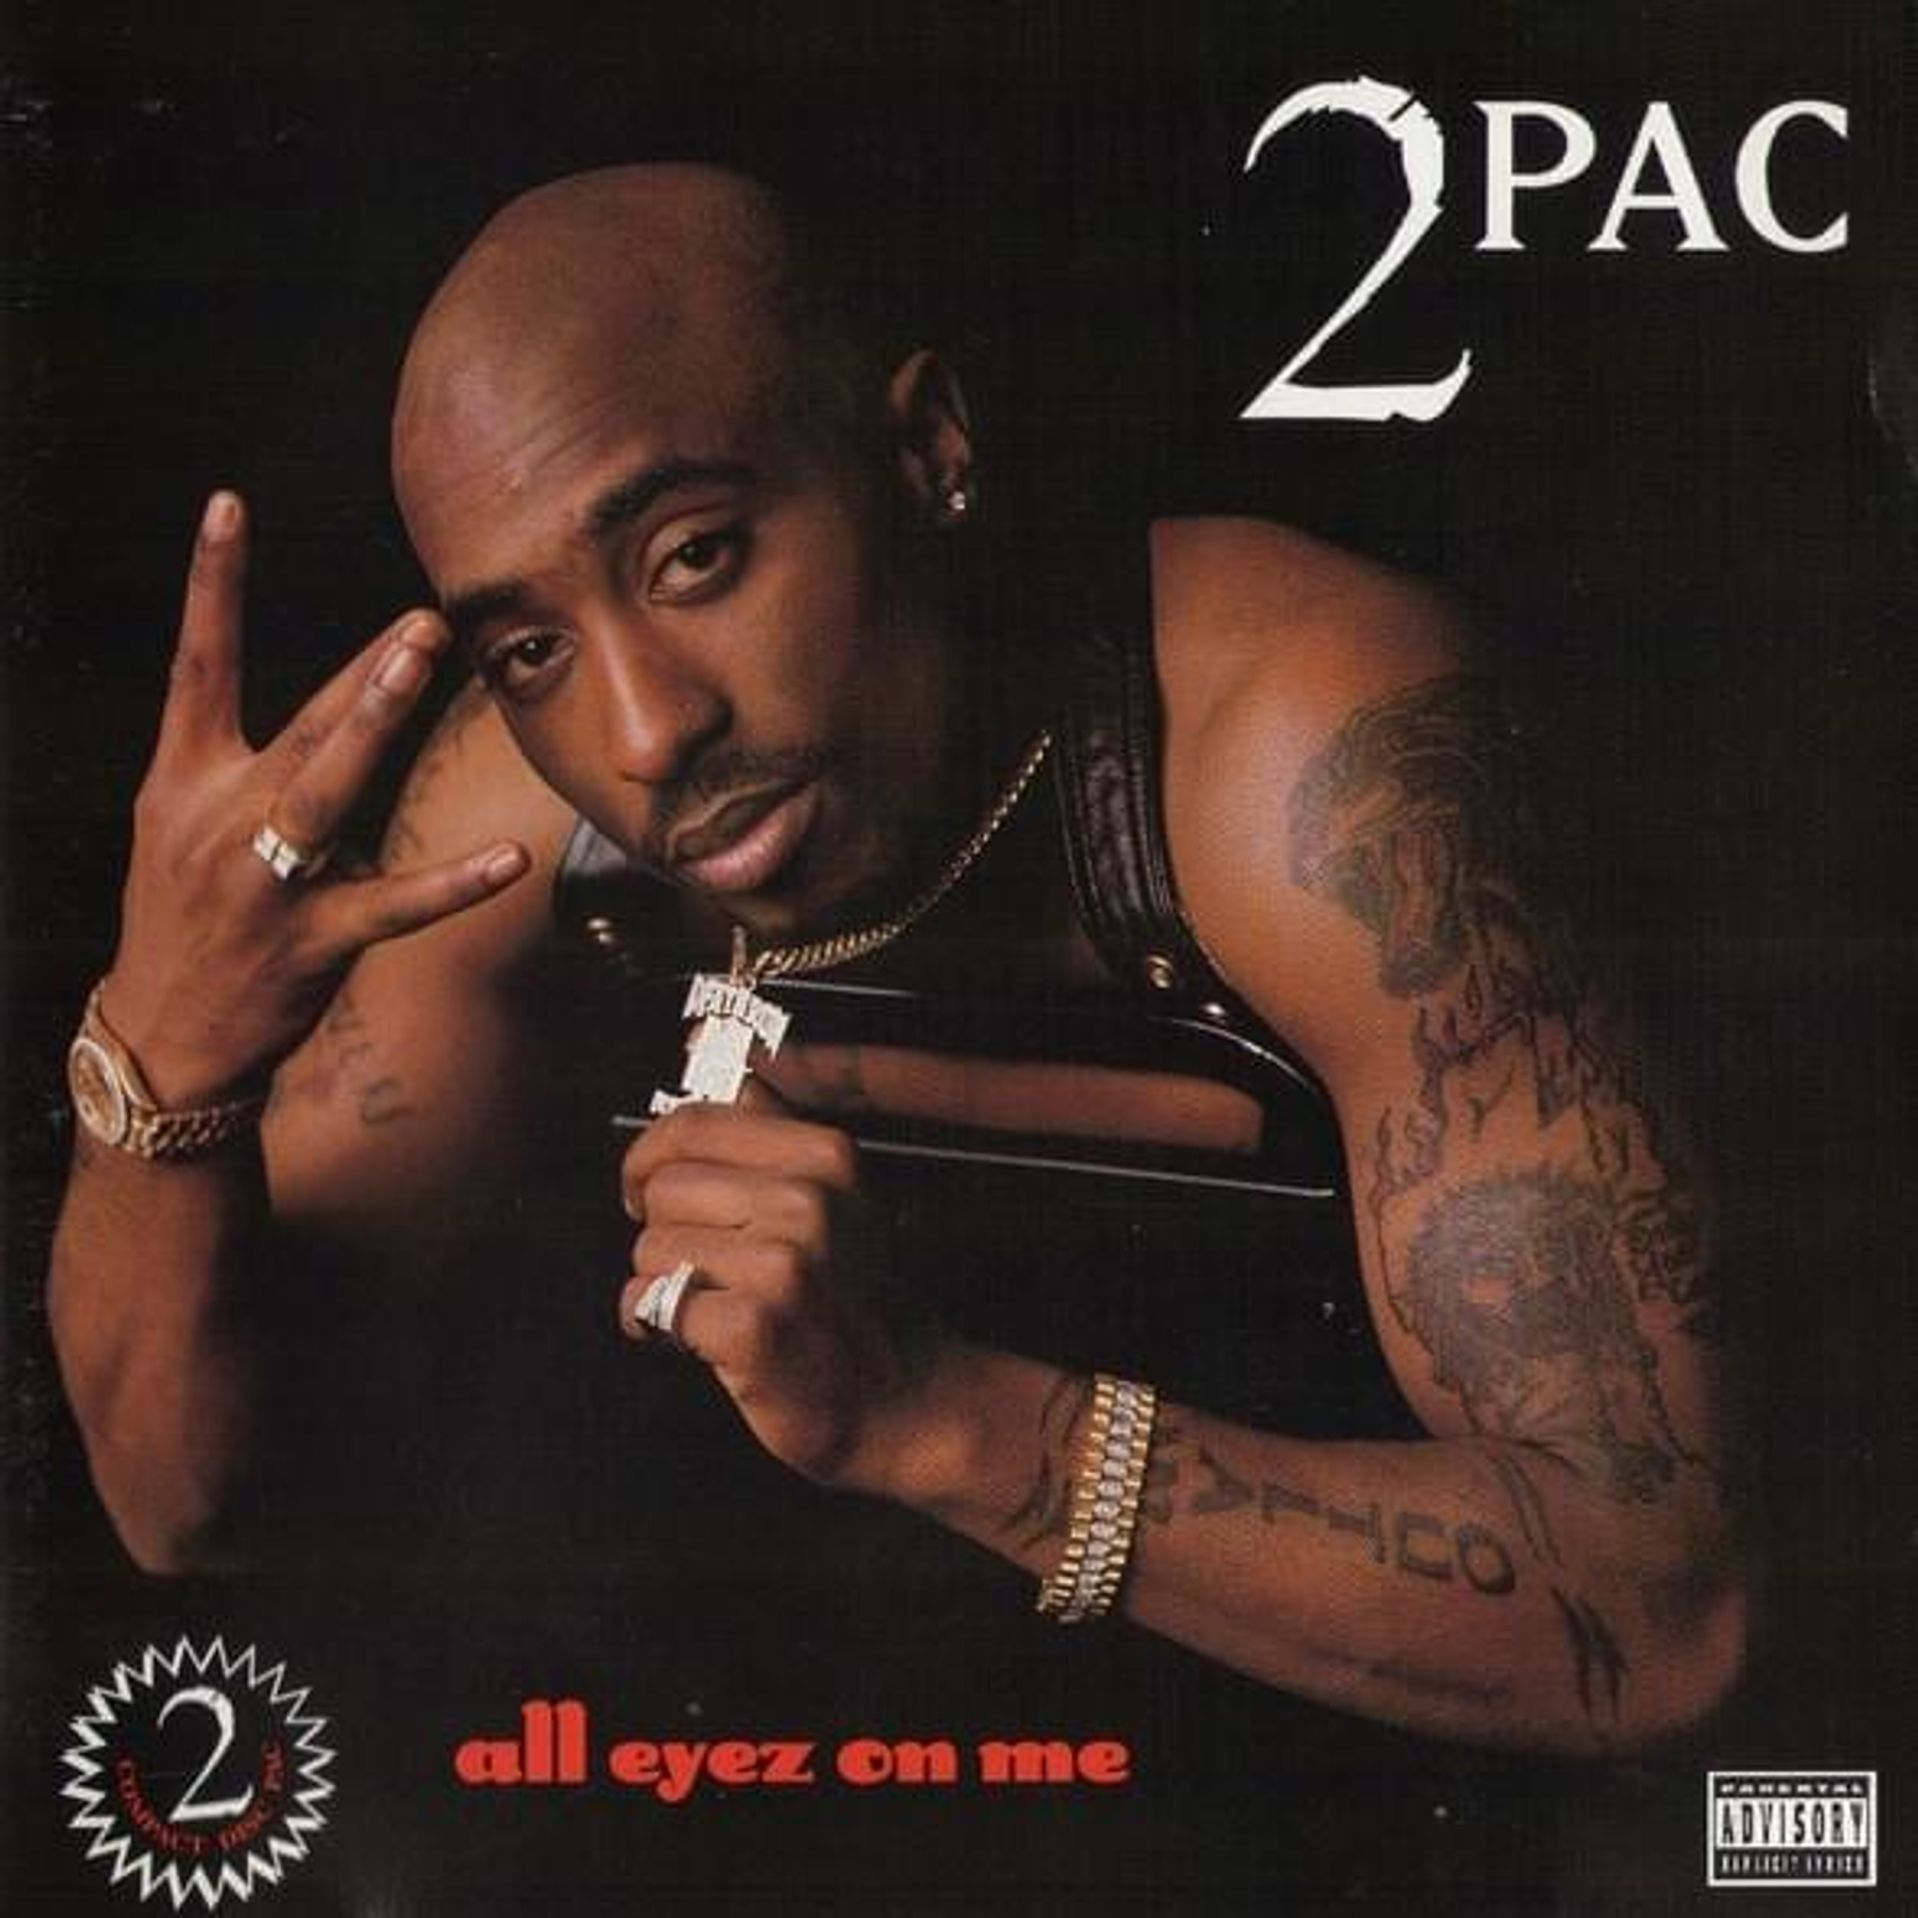 Album Title: All Eyez on Me by: Tupac